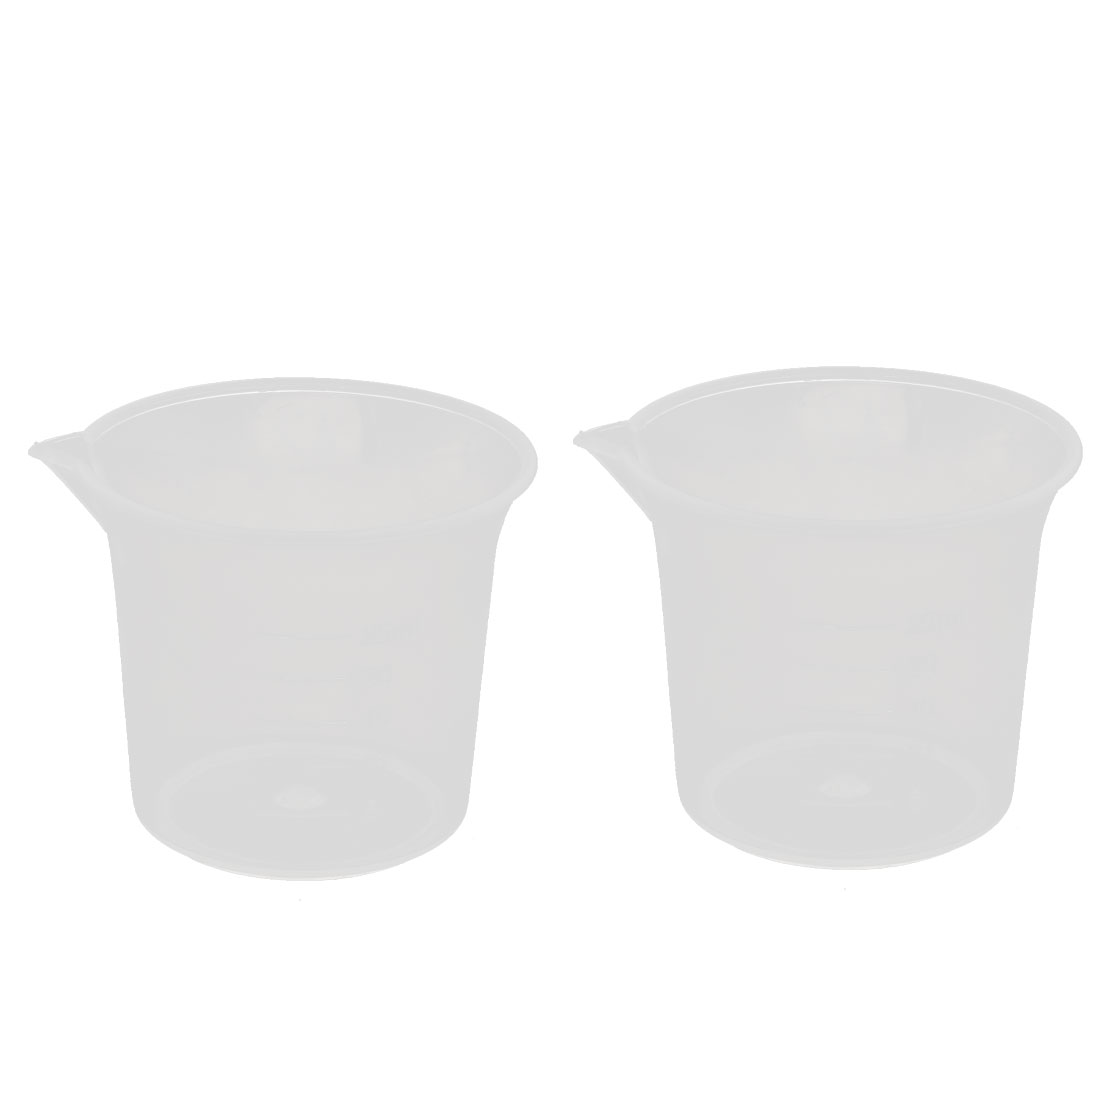 25mL Laboratory Spout Container Measuring Cup Beaker Clear 2pcs